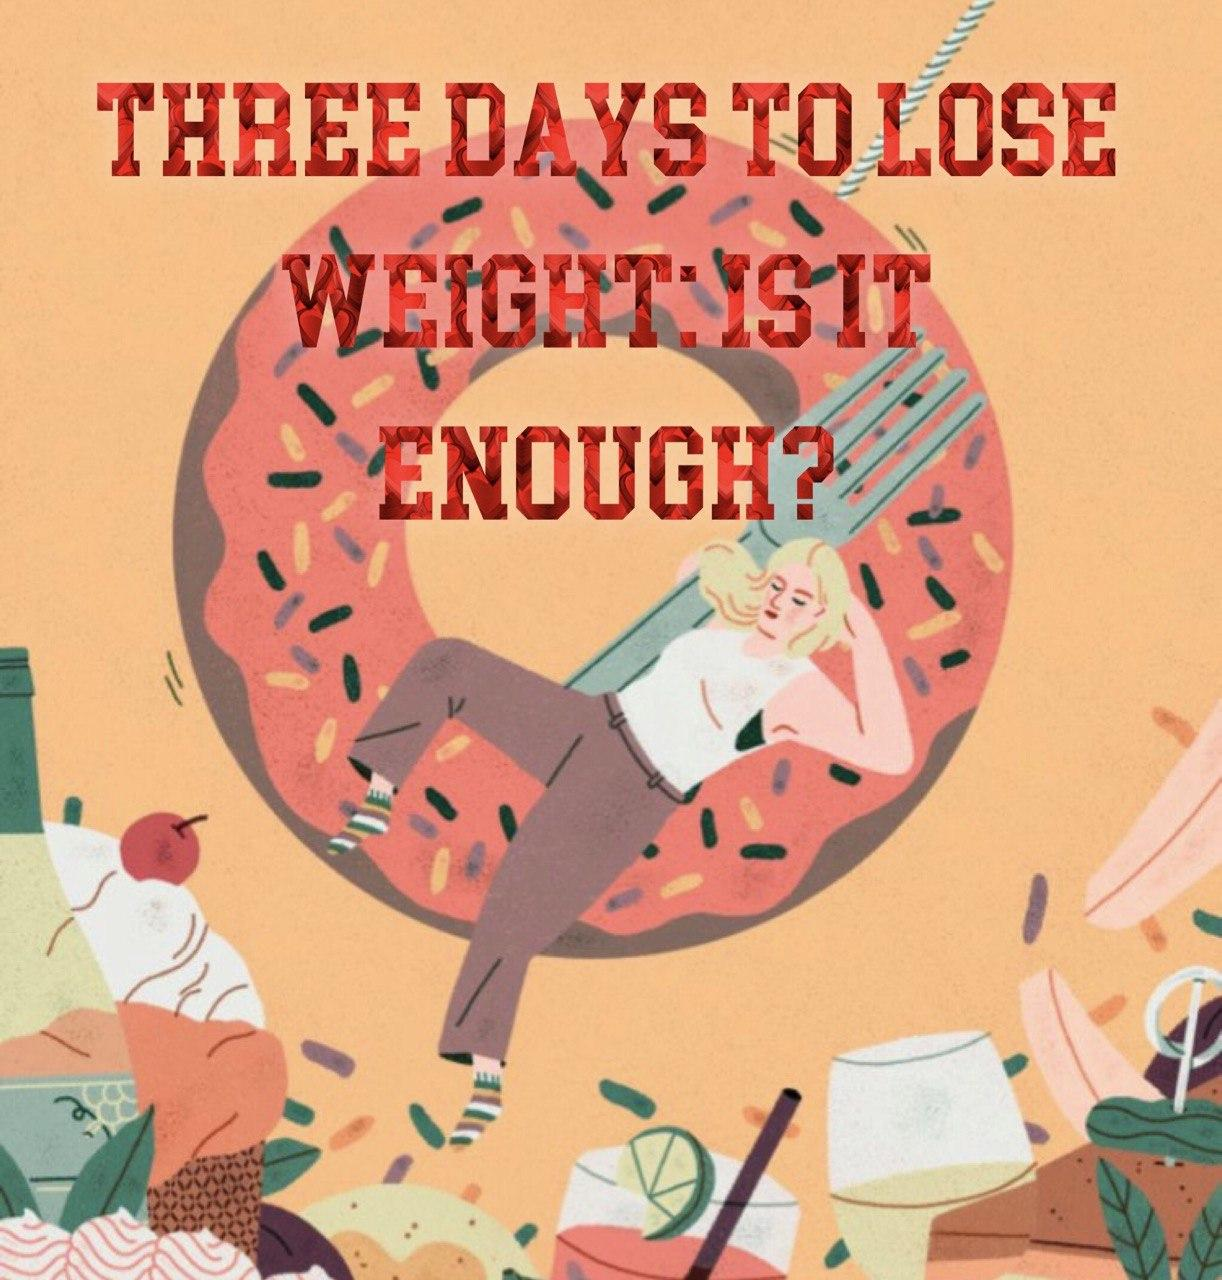 Three days to lose weight: is it enough?